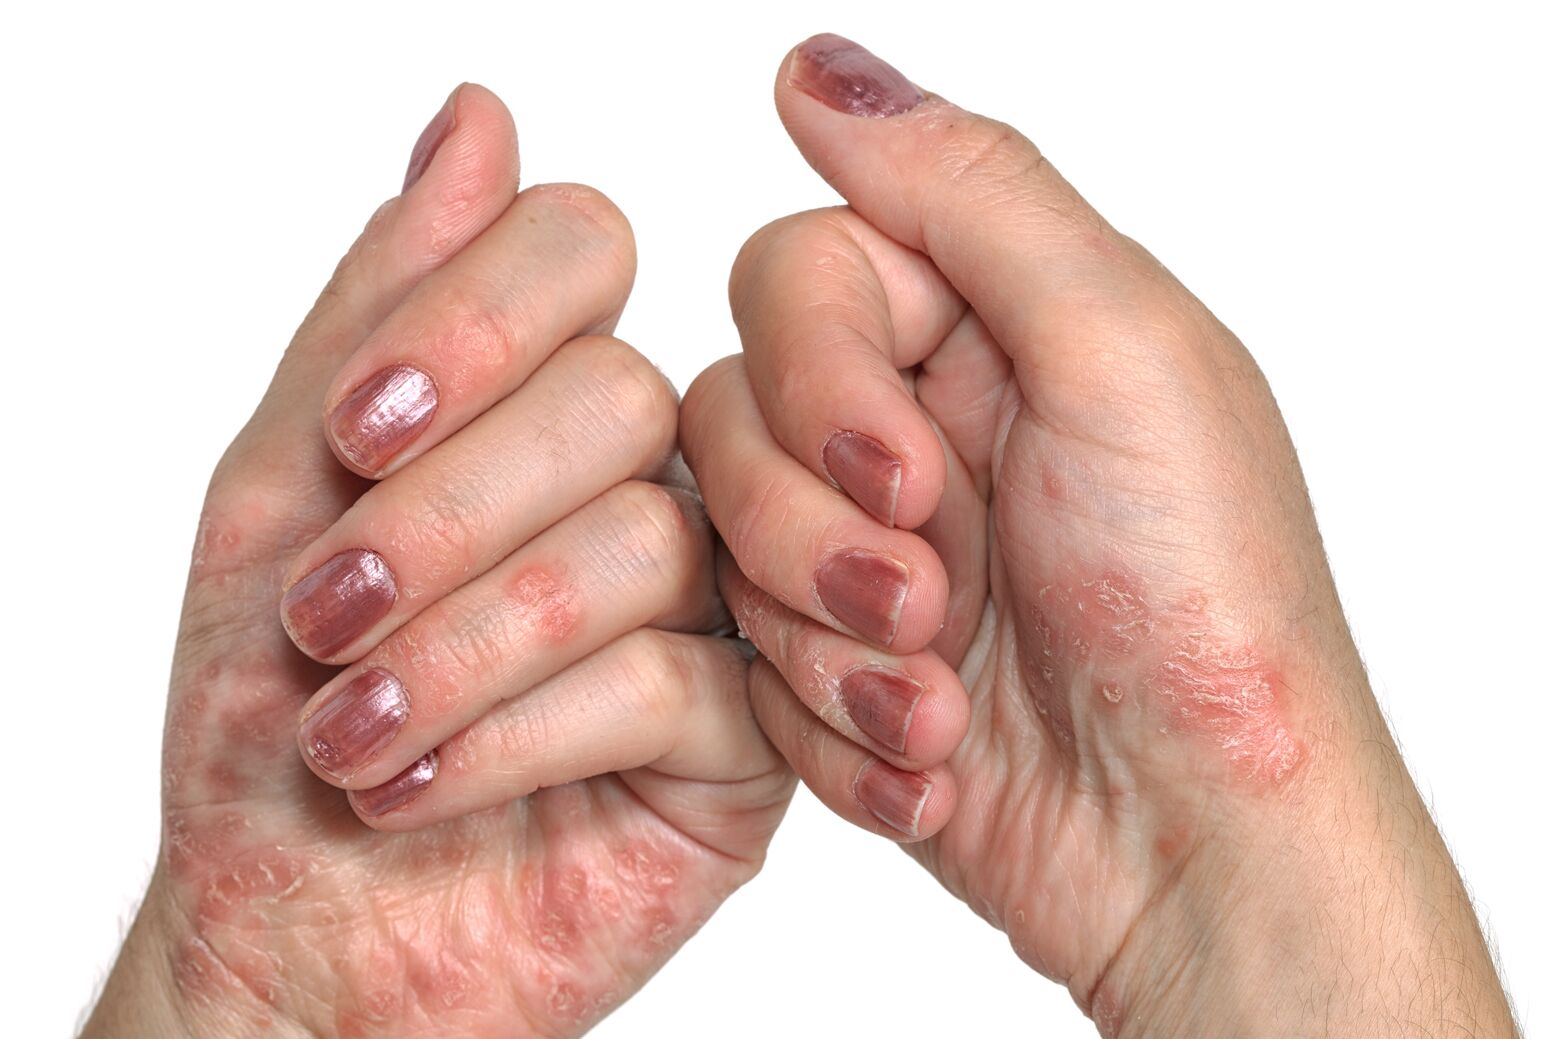 Two hands show eczema